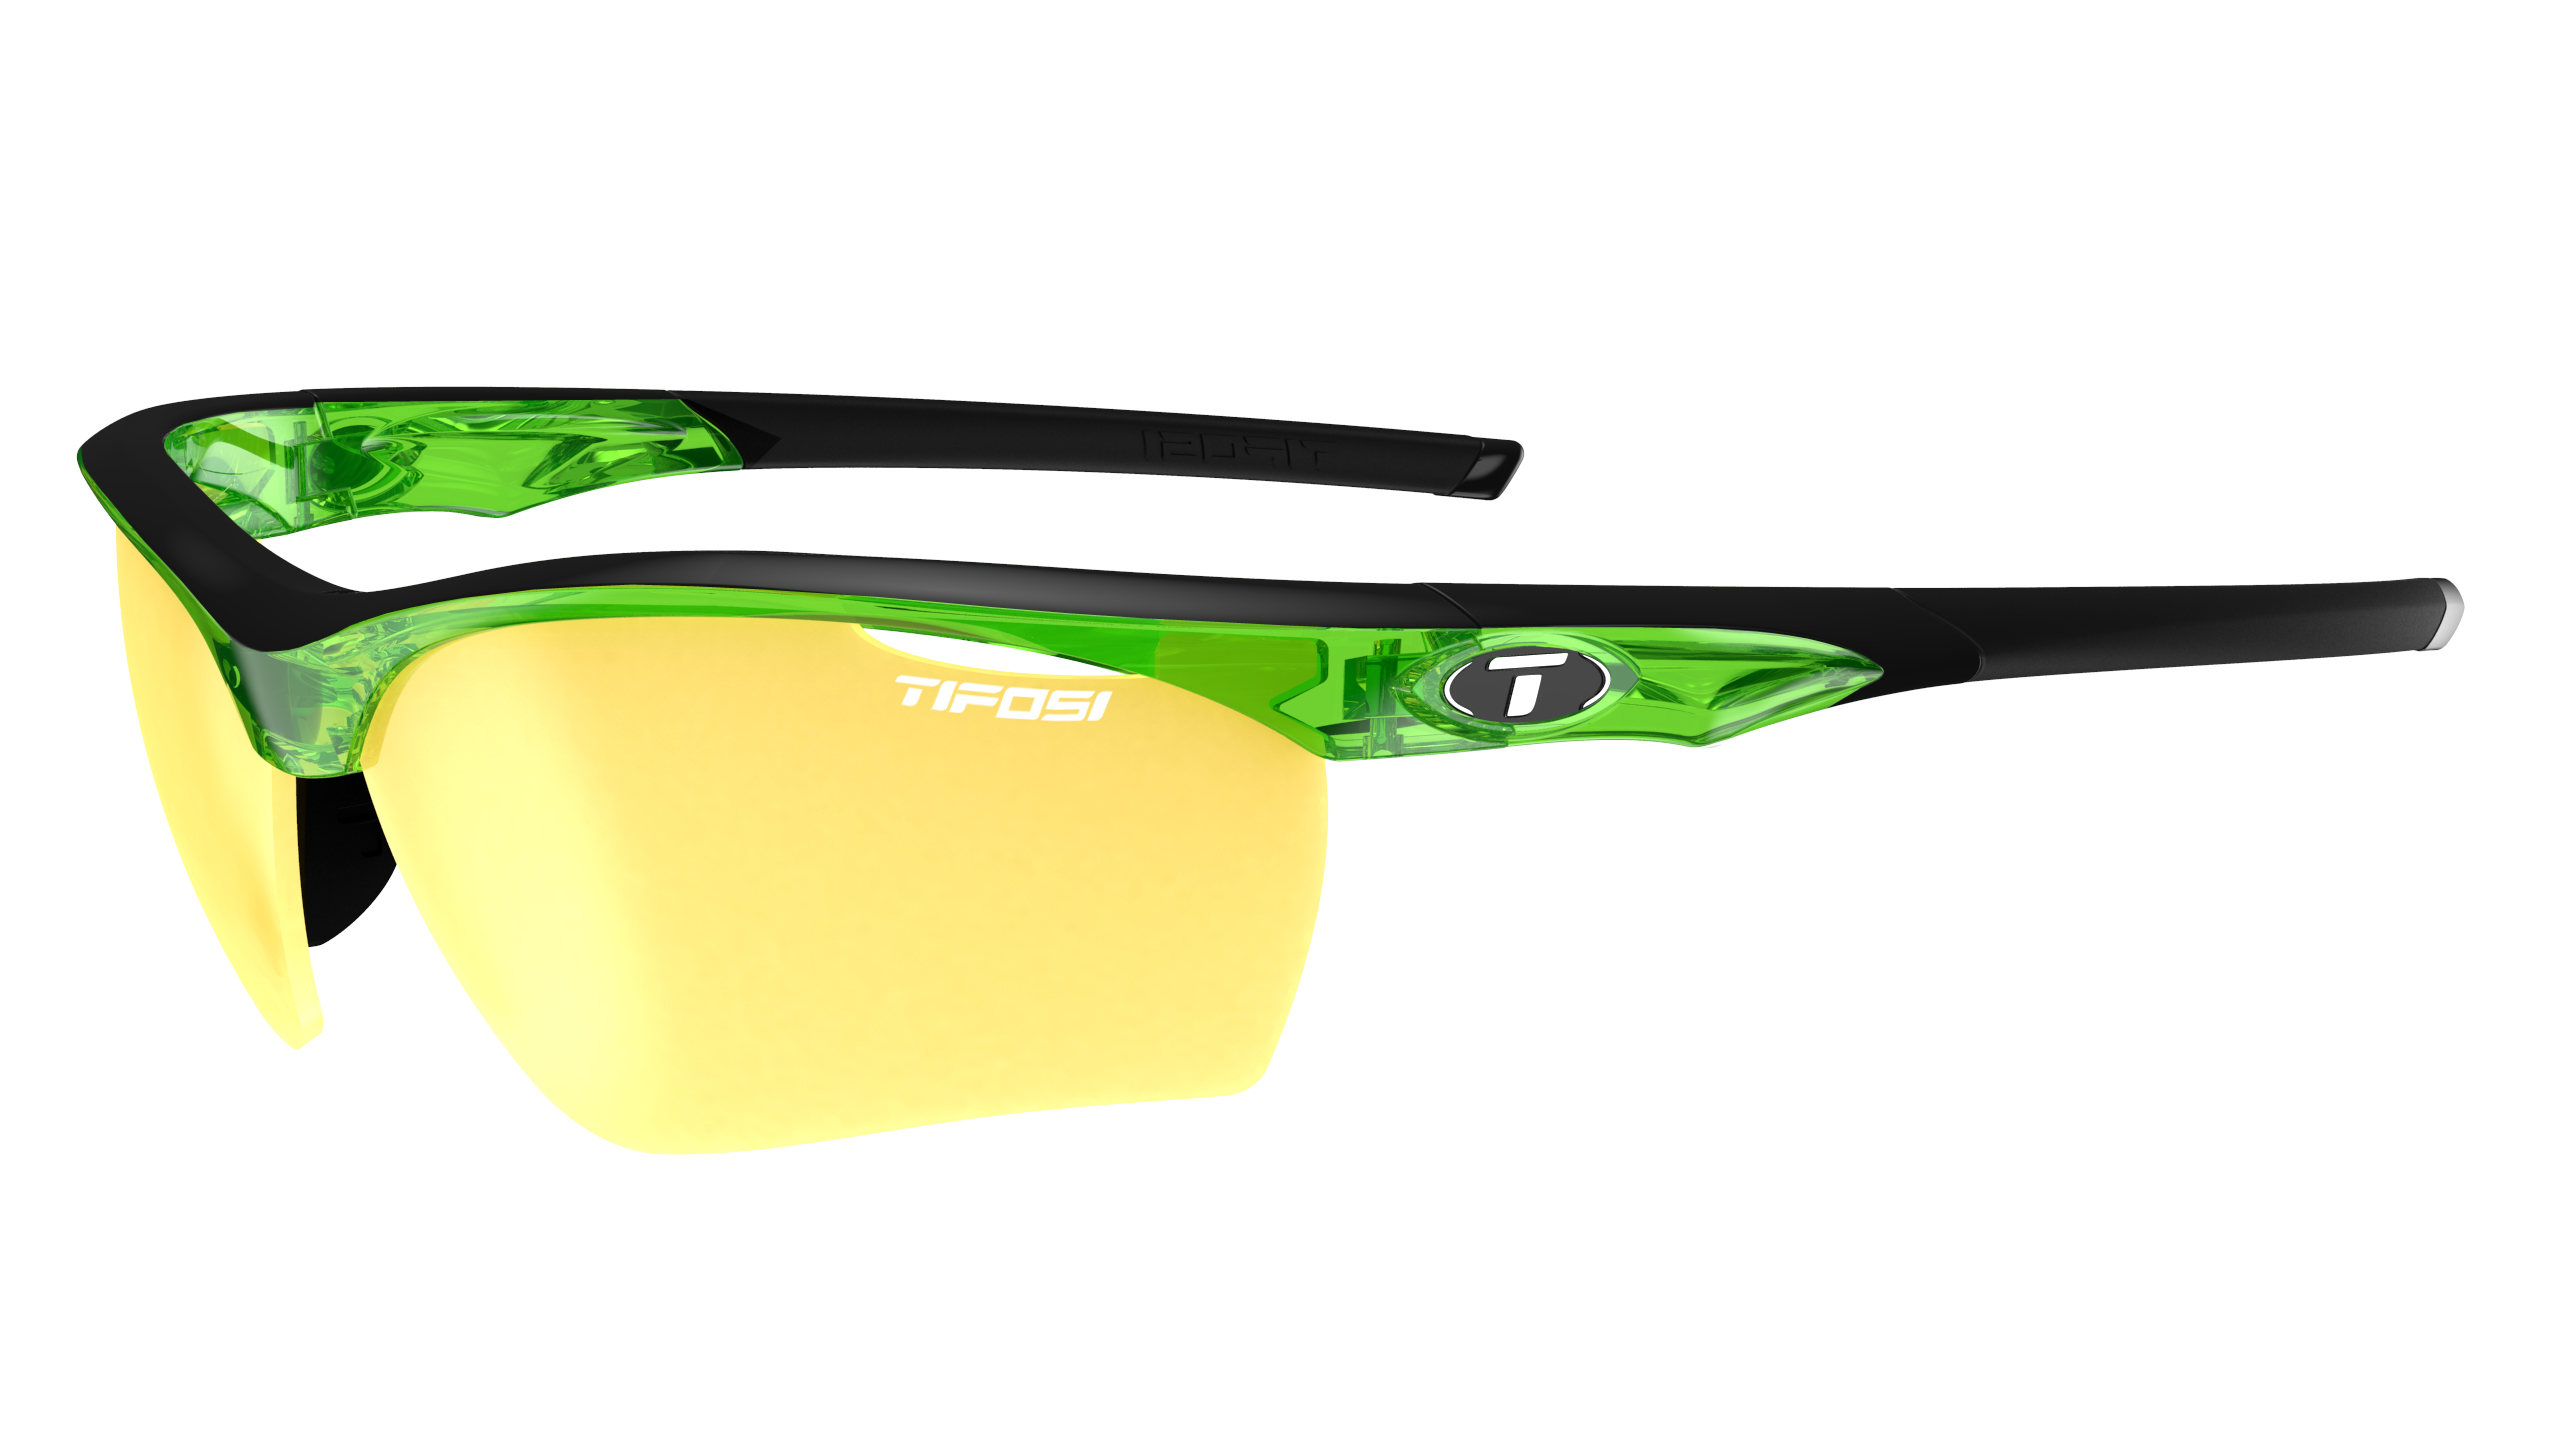 Tifosi Vero Sunglasses Crystal Neon Green w/ Clarion Yellow/AC Red/Clear